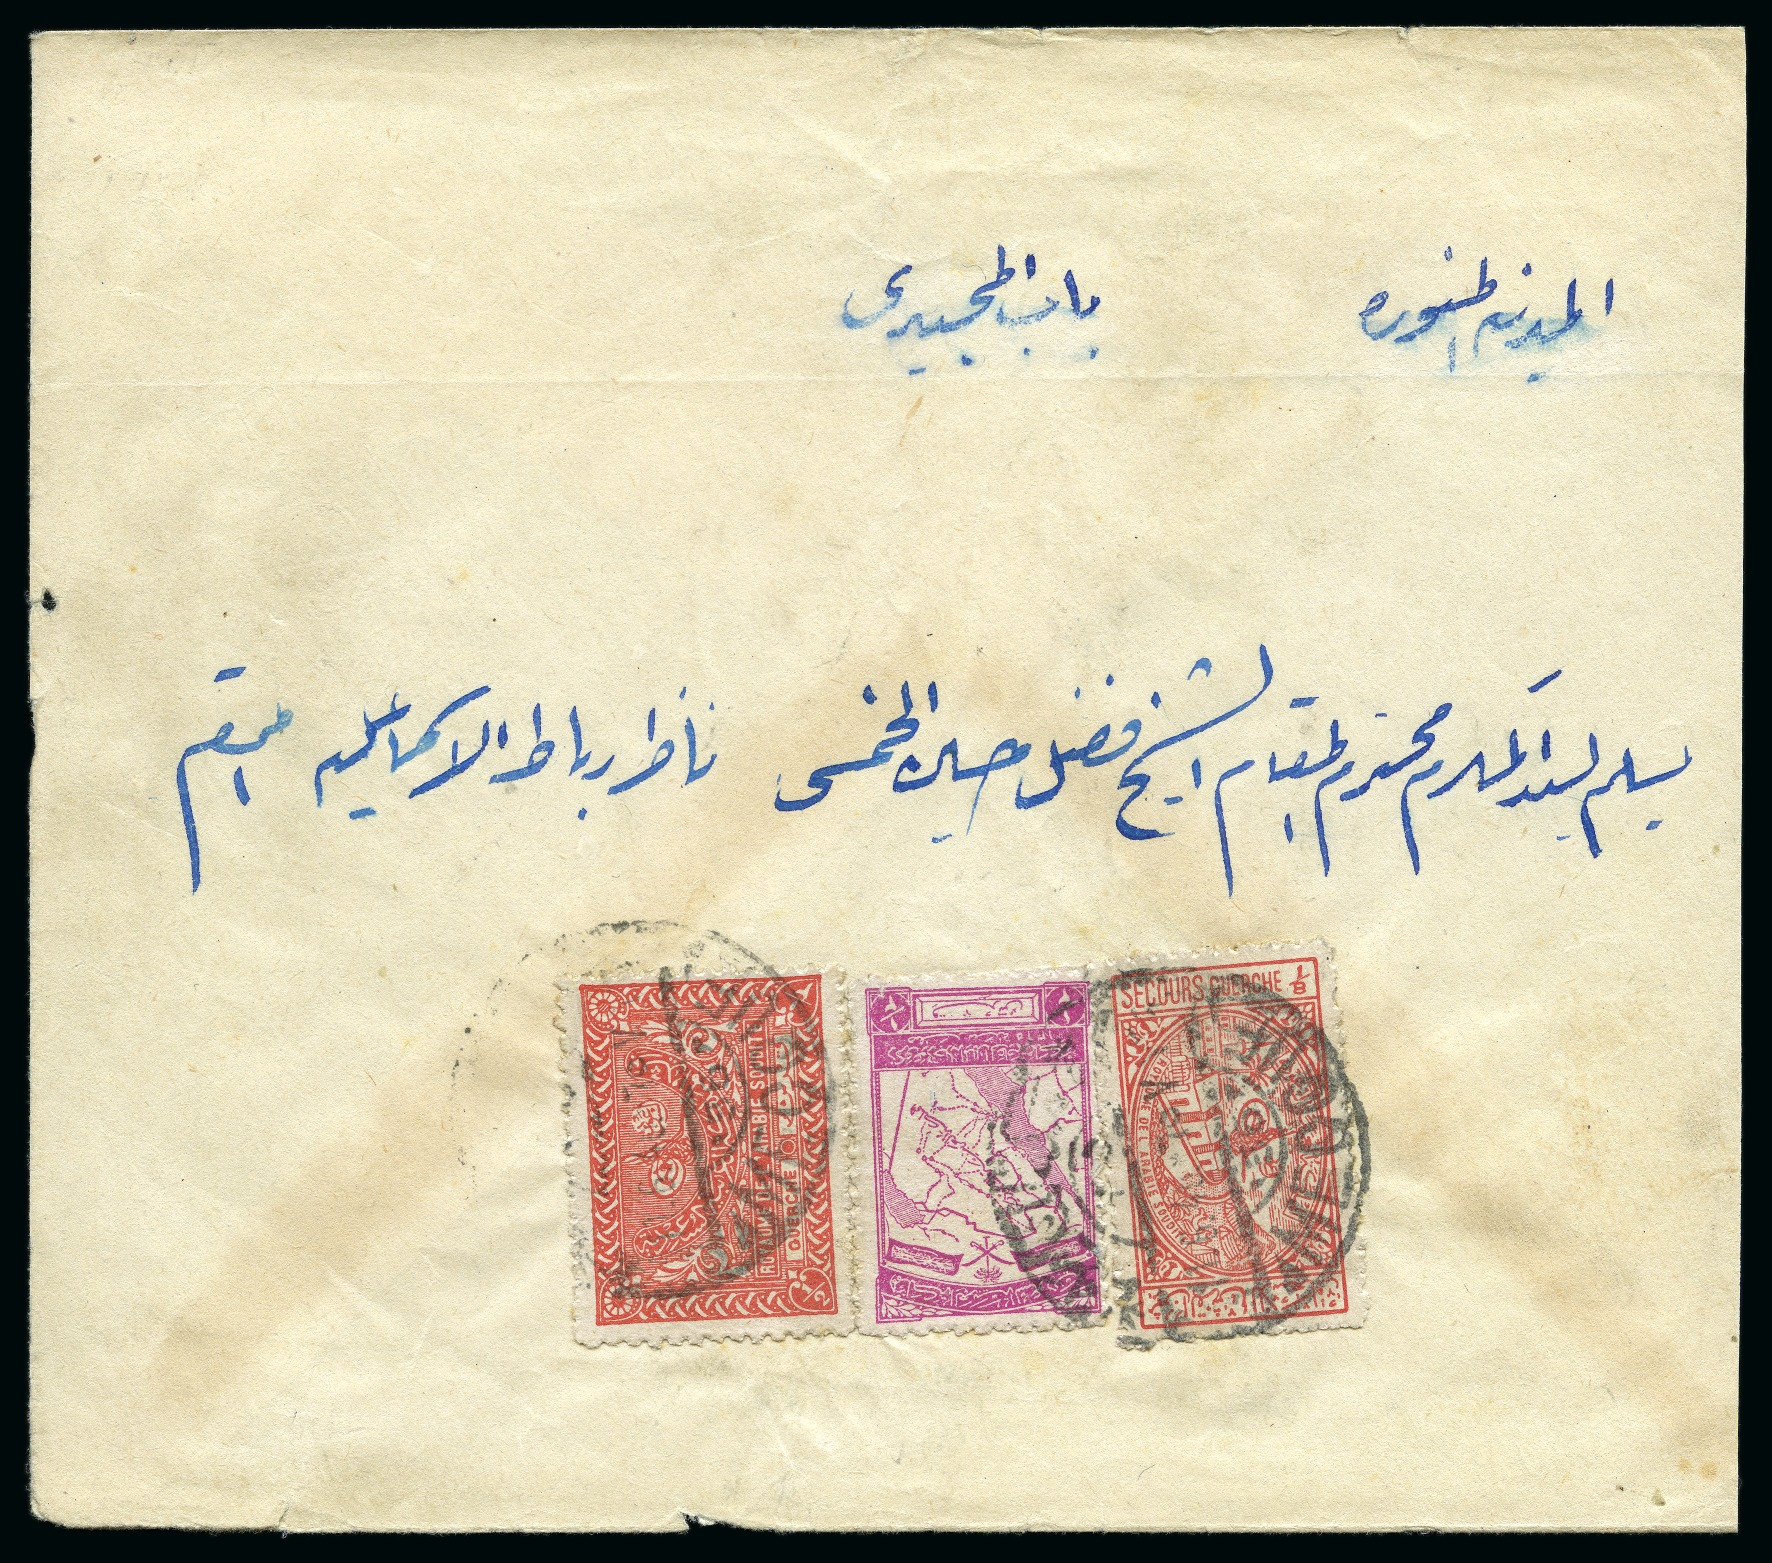 1948 Cover from Mecca to Medina (1/2g. rate), the map